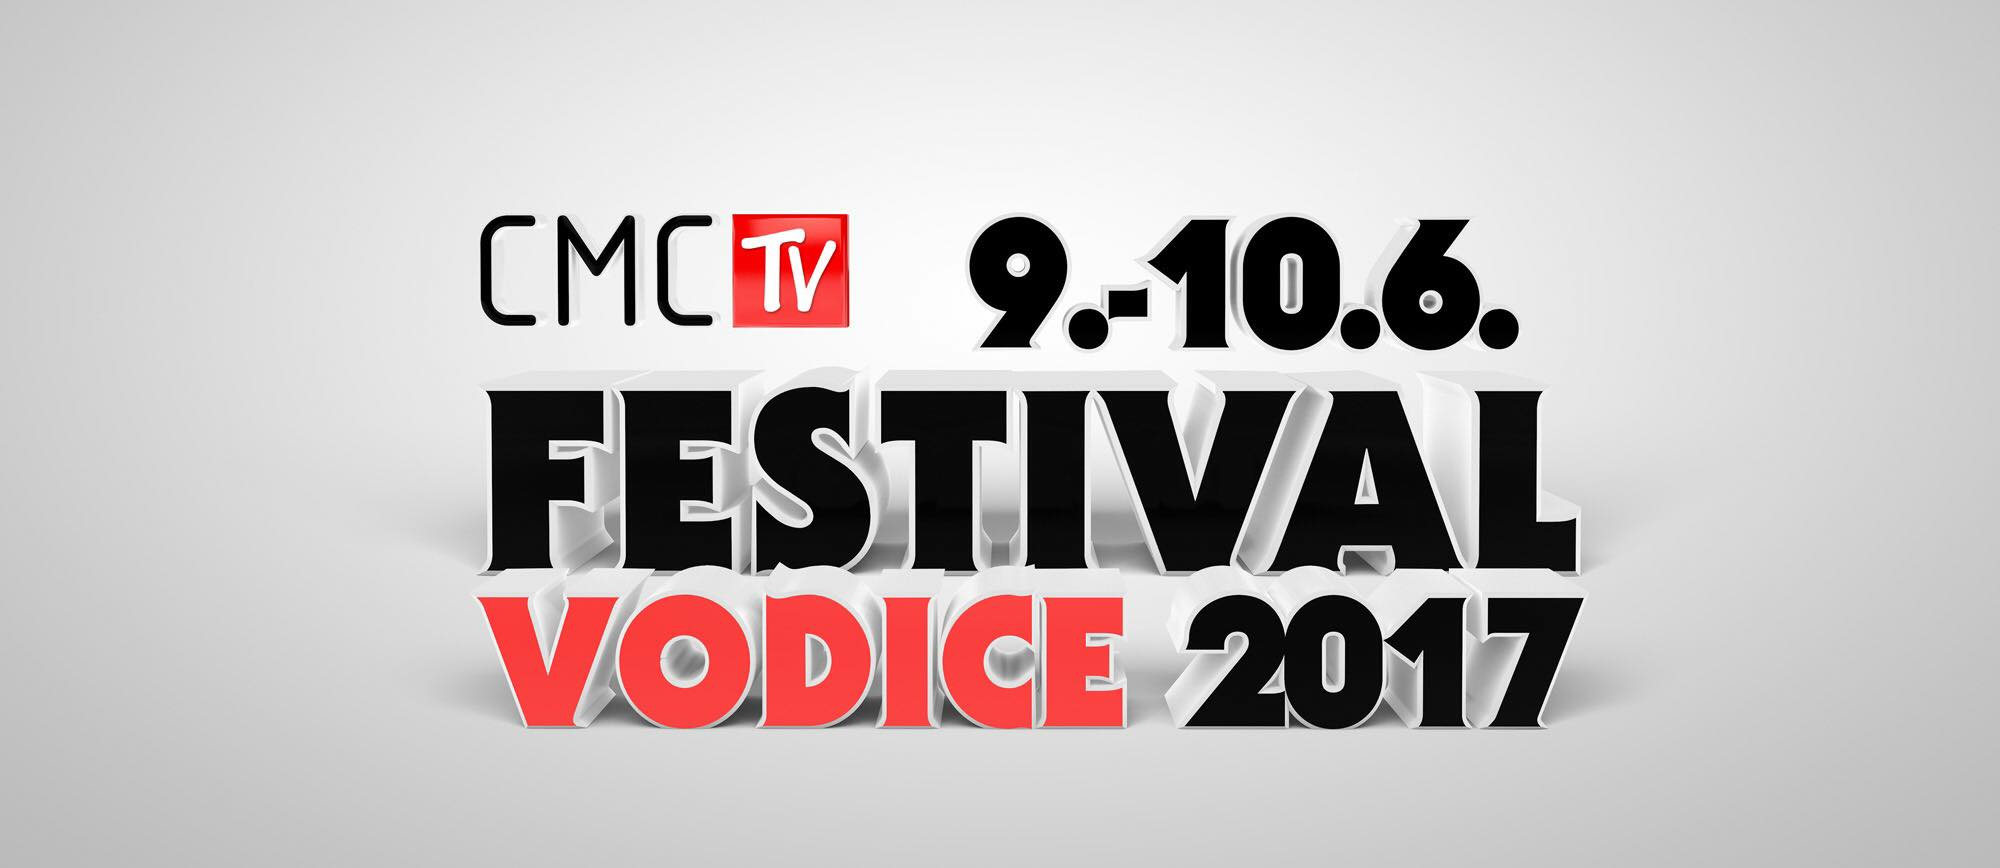 cmc croatian music channel